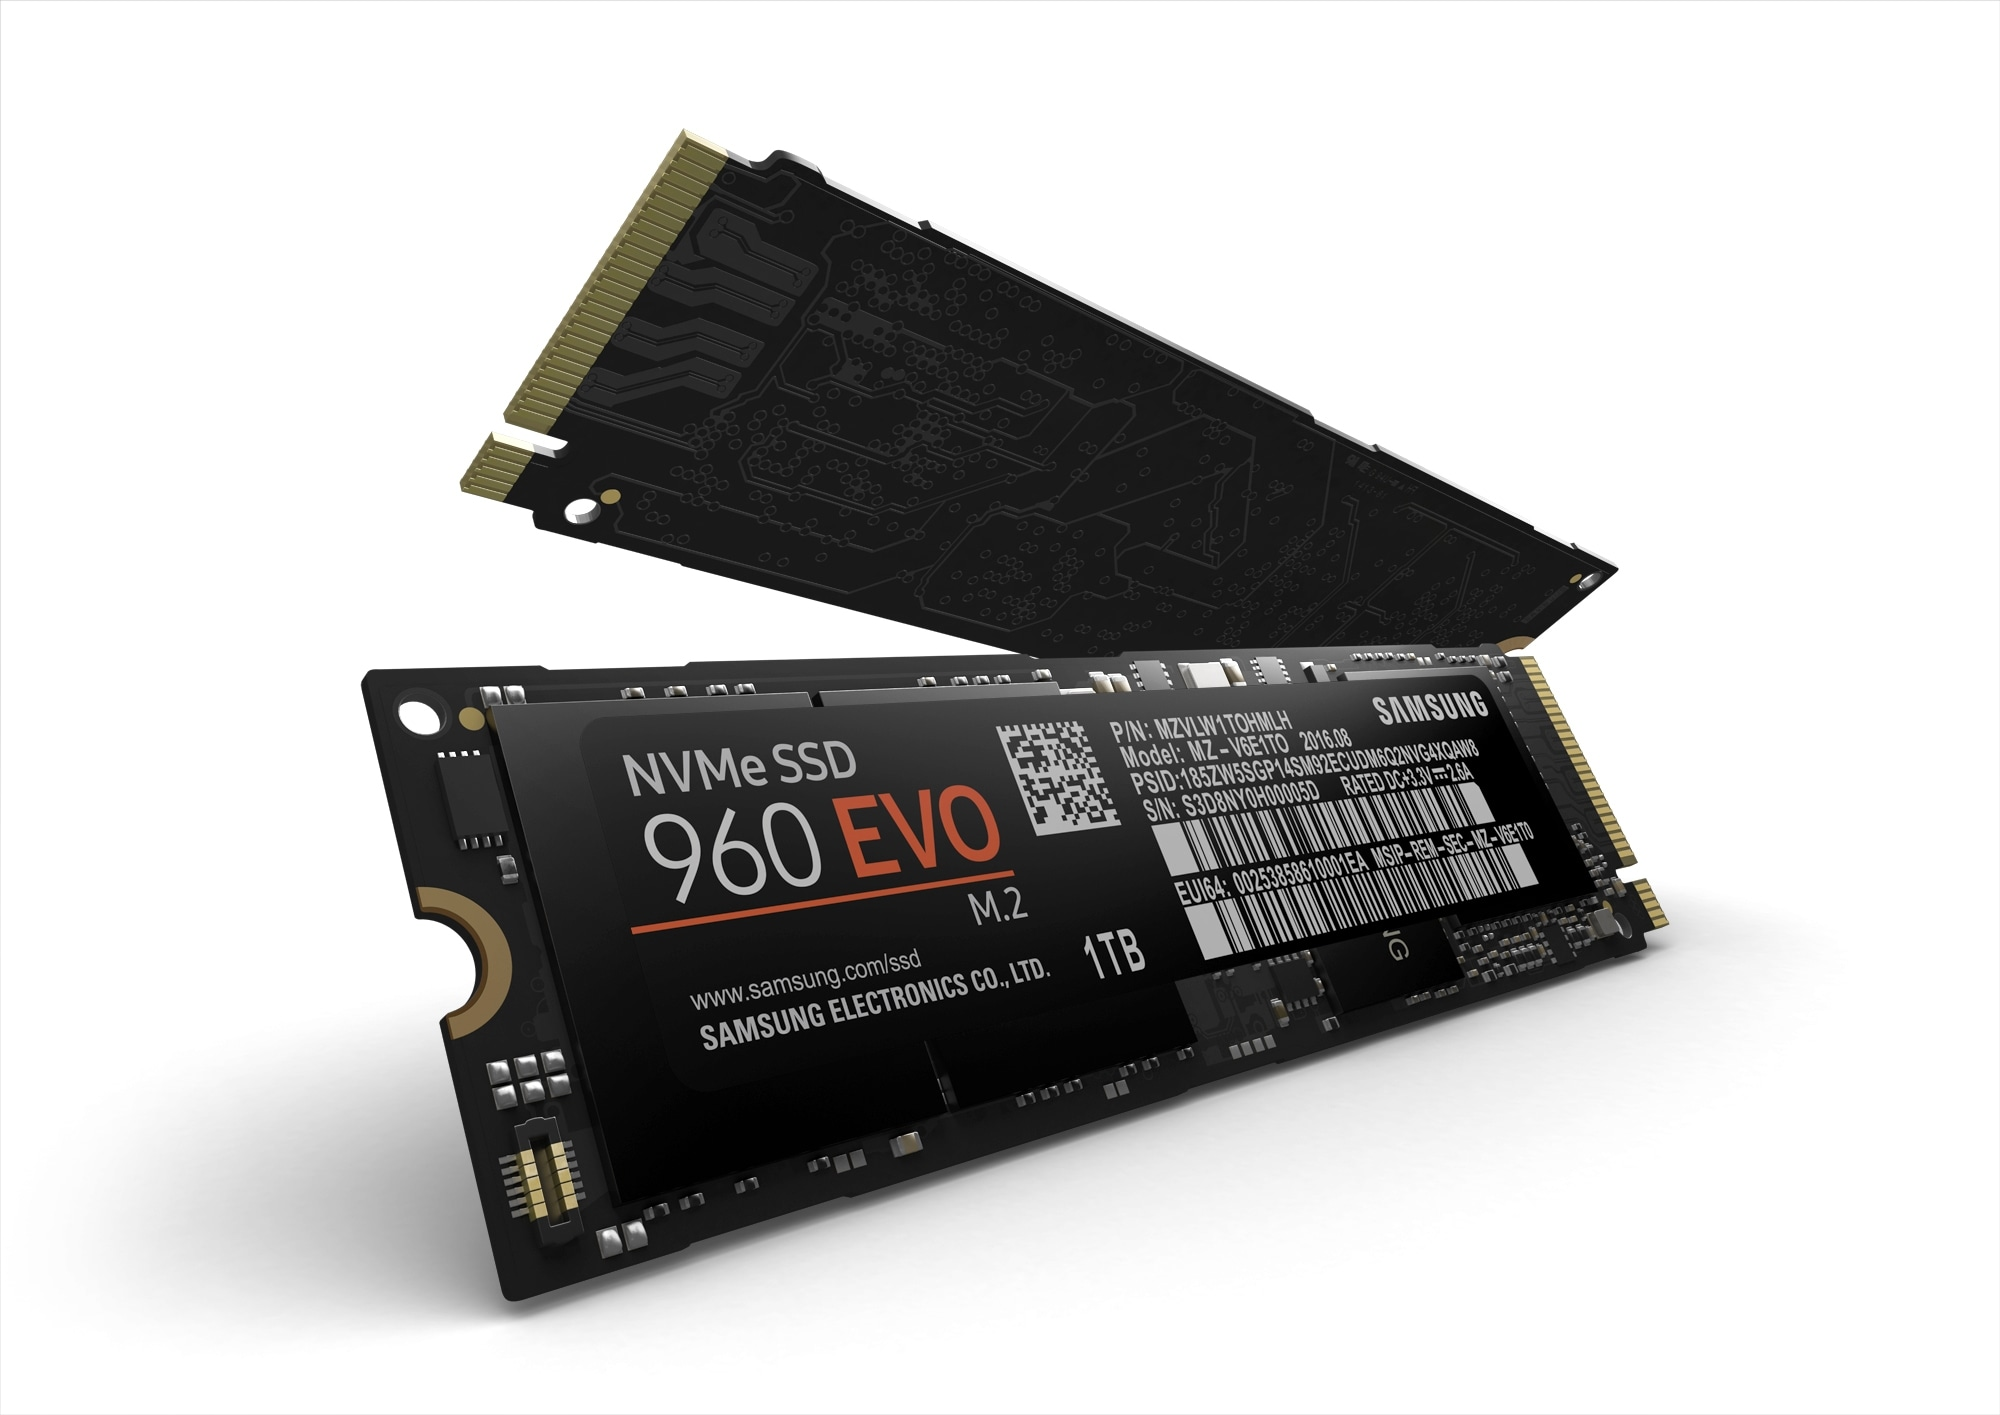 Samsung Semiconductor Memory Business Overview, NAND Flash, Samsung NVMe SSD 960 EVO